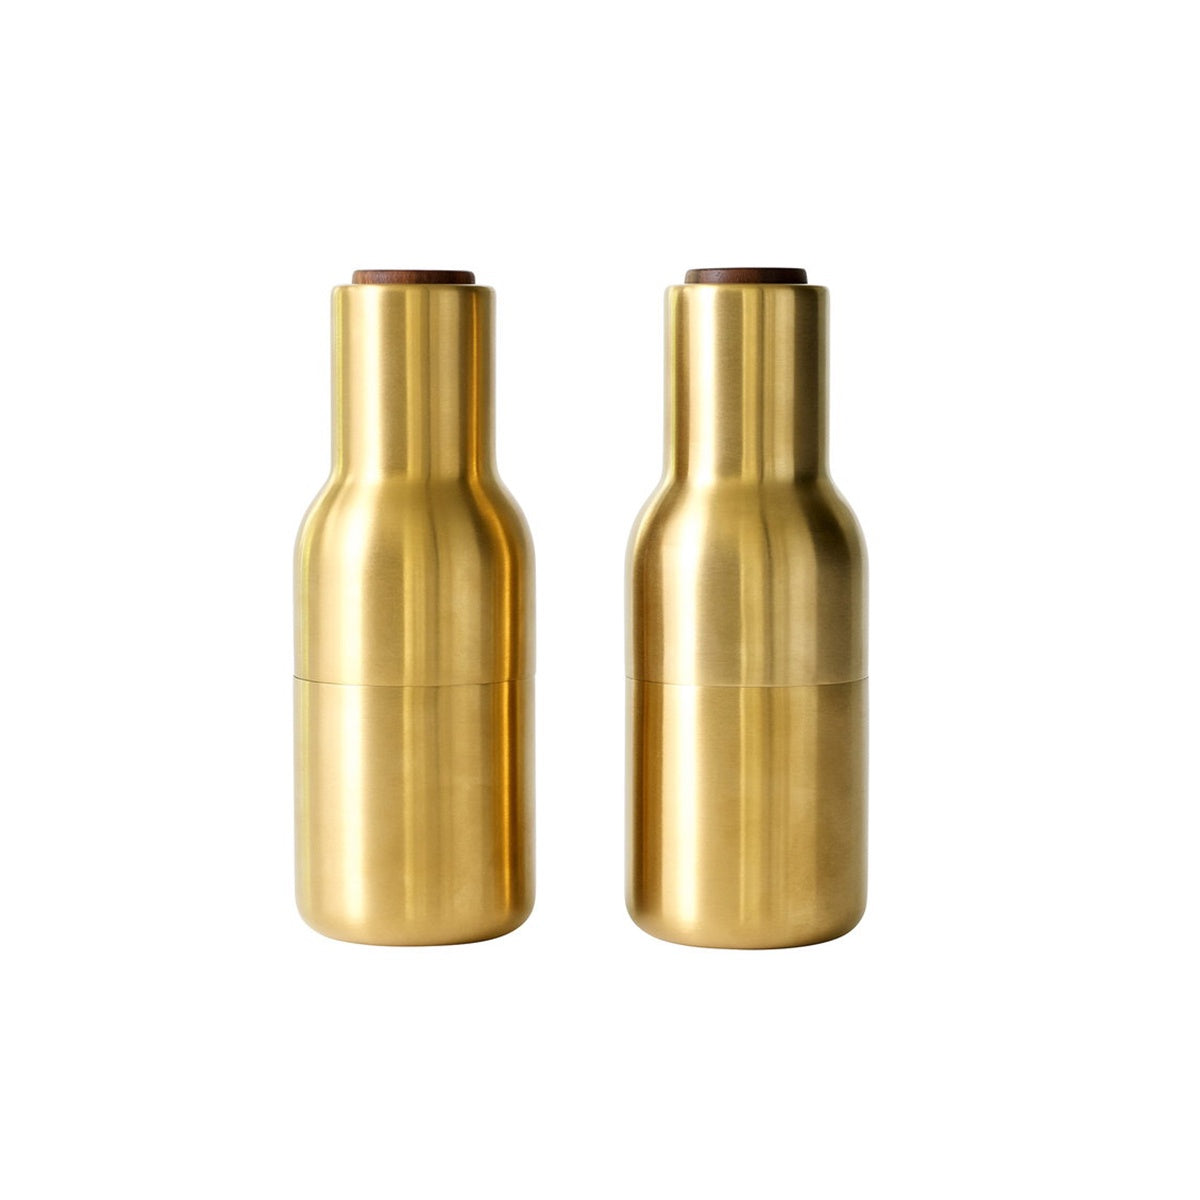 Menu, Bottle Grinder, Brushed Brass Gold W. Walnut Lid, 2-Pack by Norm Architects